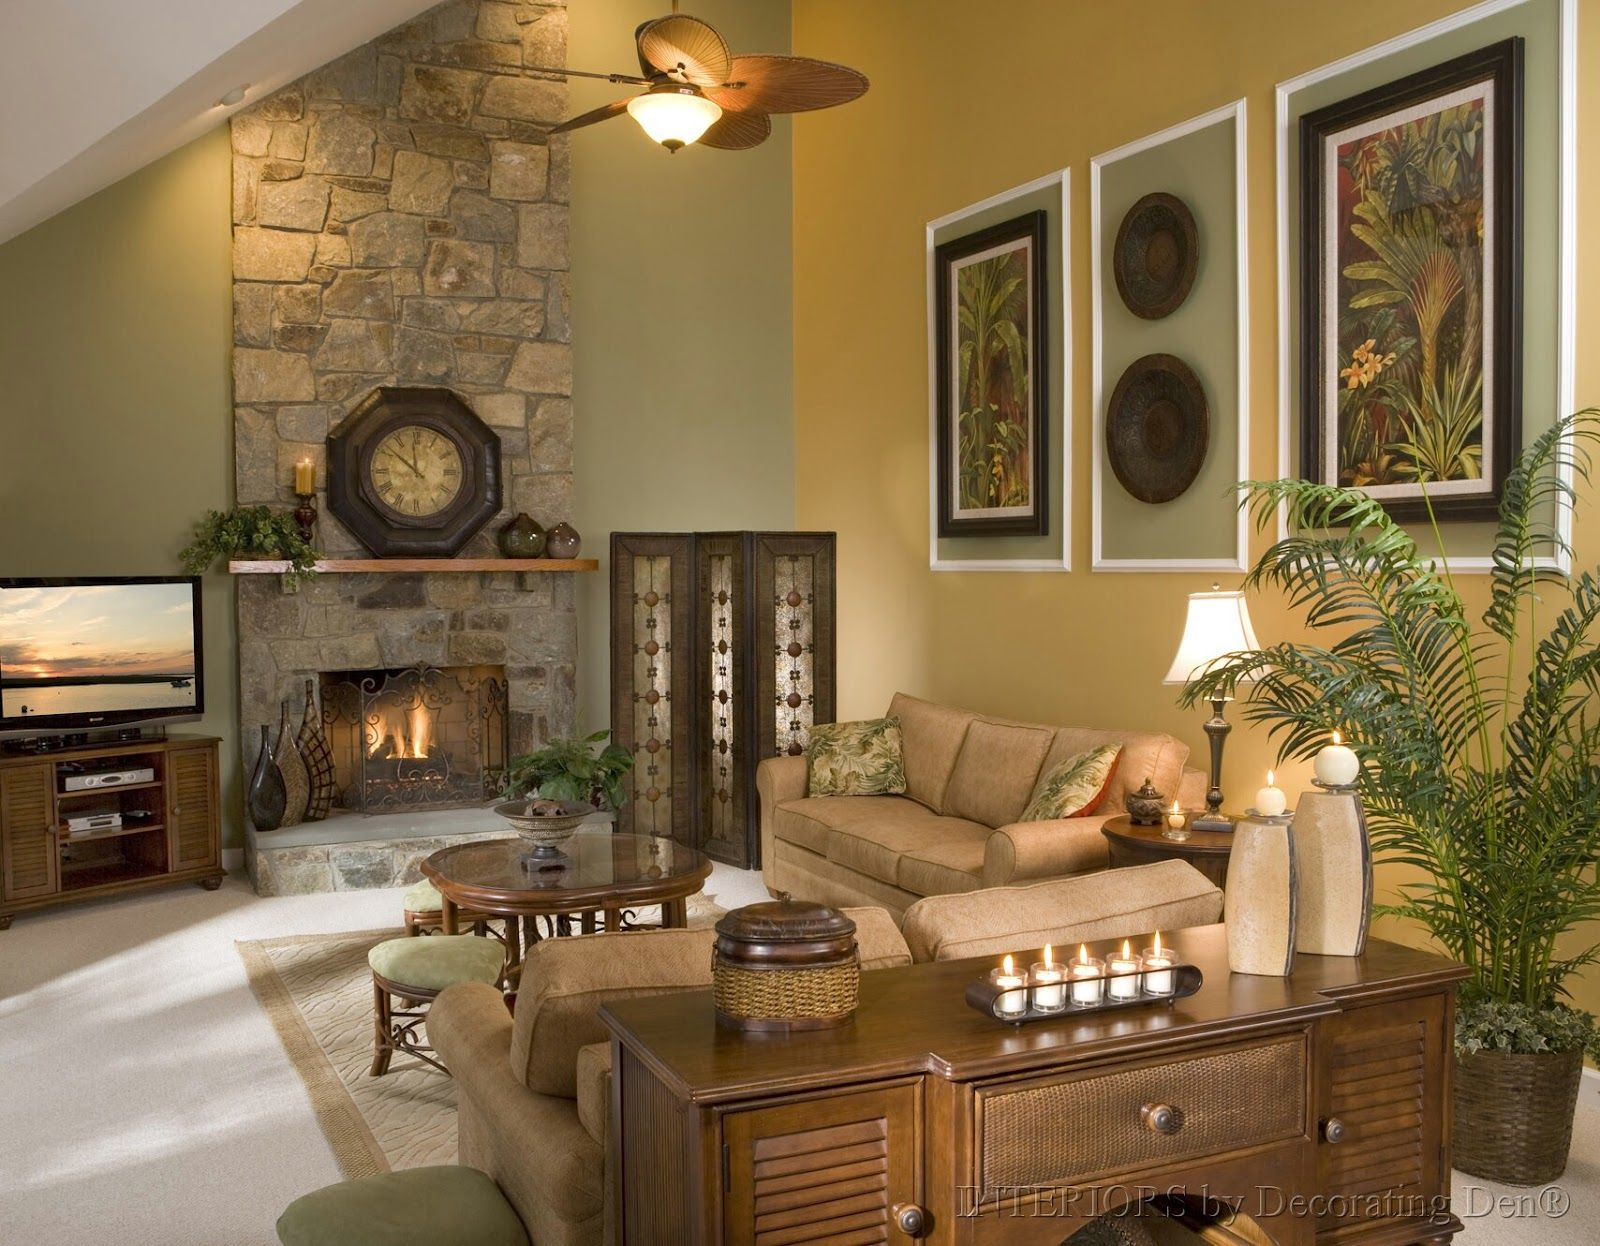 Decorating A Living Room With High CeilingsHouse Decor